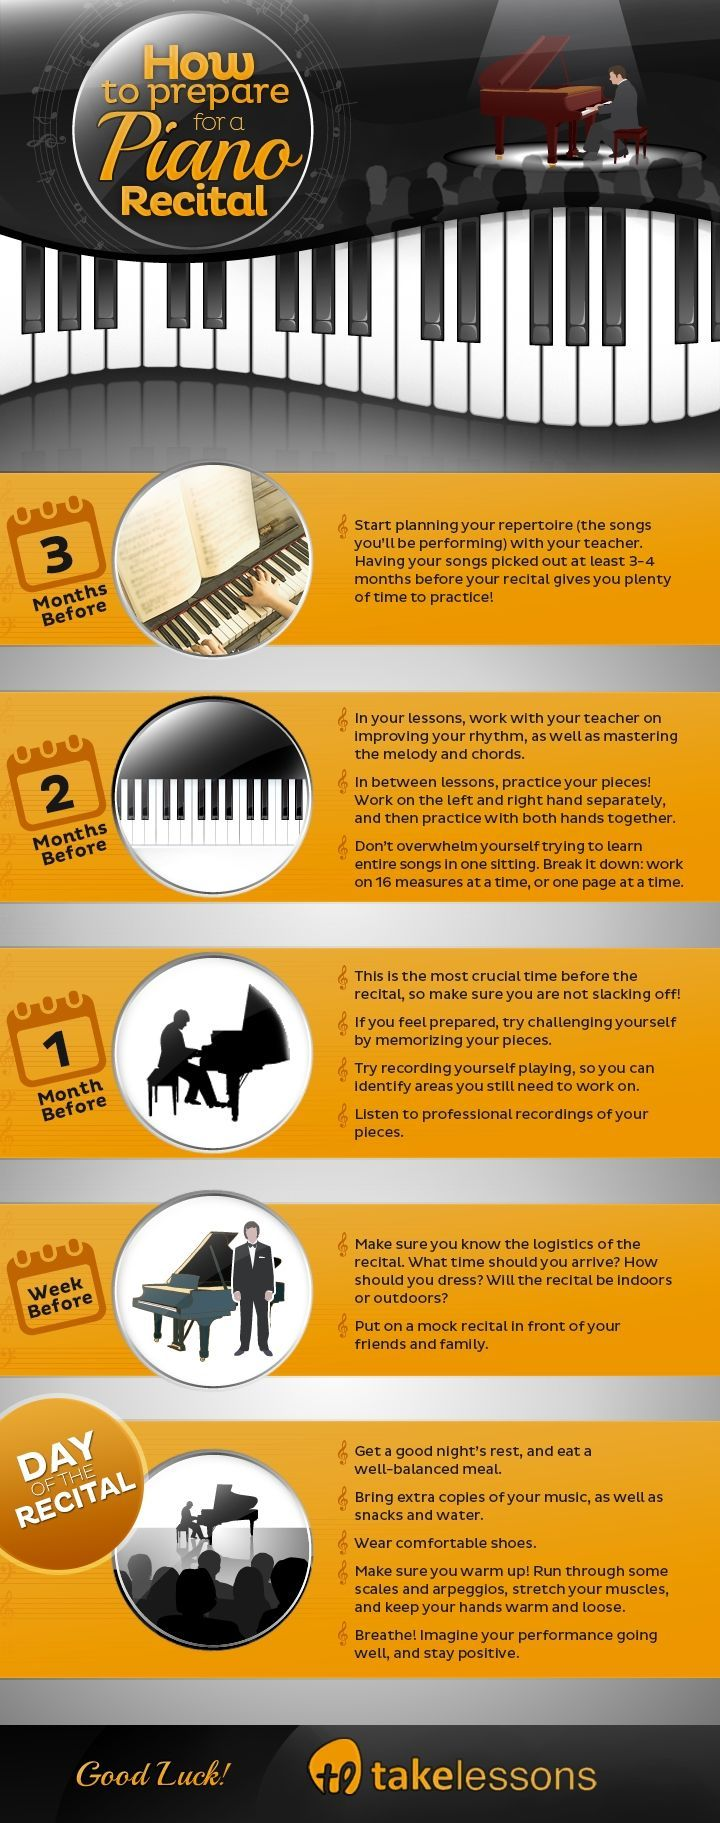 How to Get Ready for Your First Piano Recital